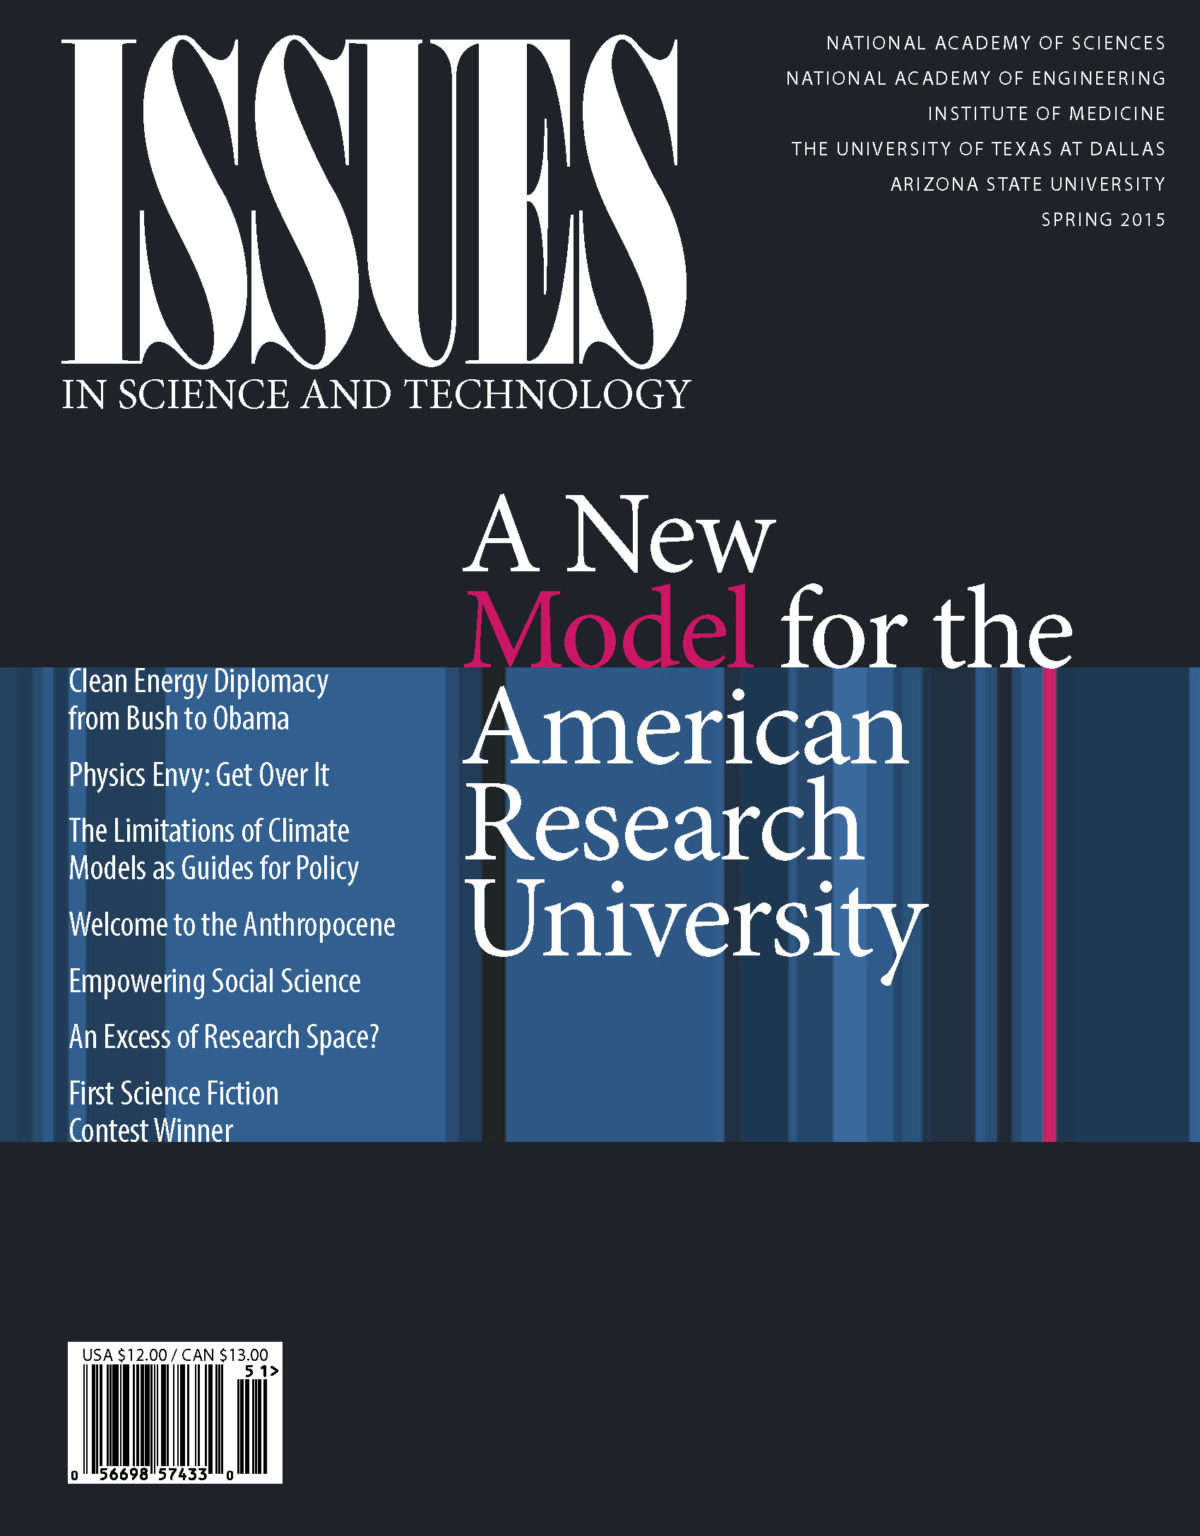 Issues Spring 2015 a new model for the American Research University cover